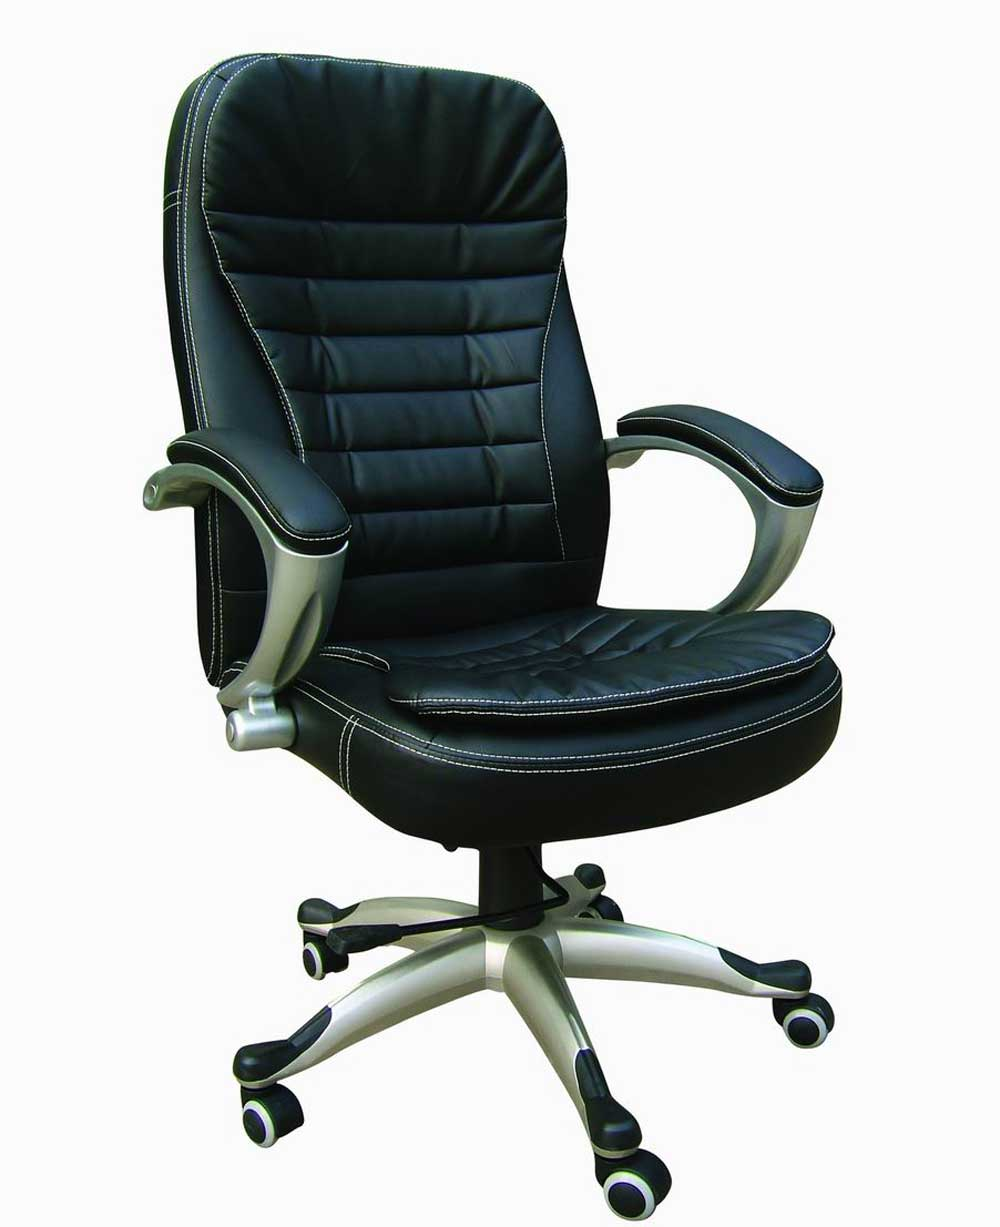 leather office furniture chair with arm and padding